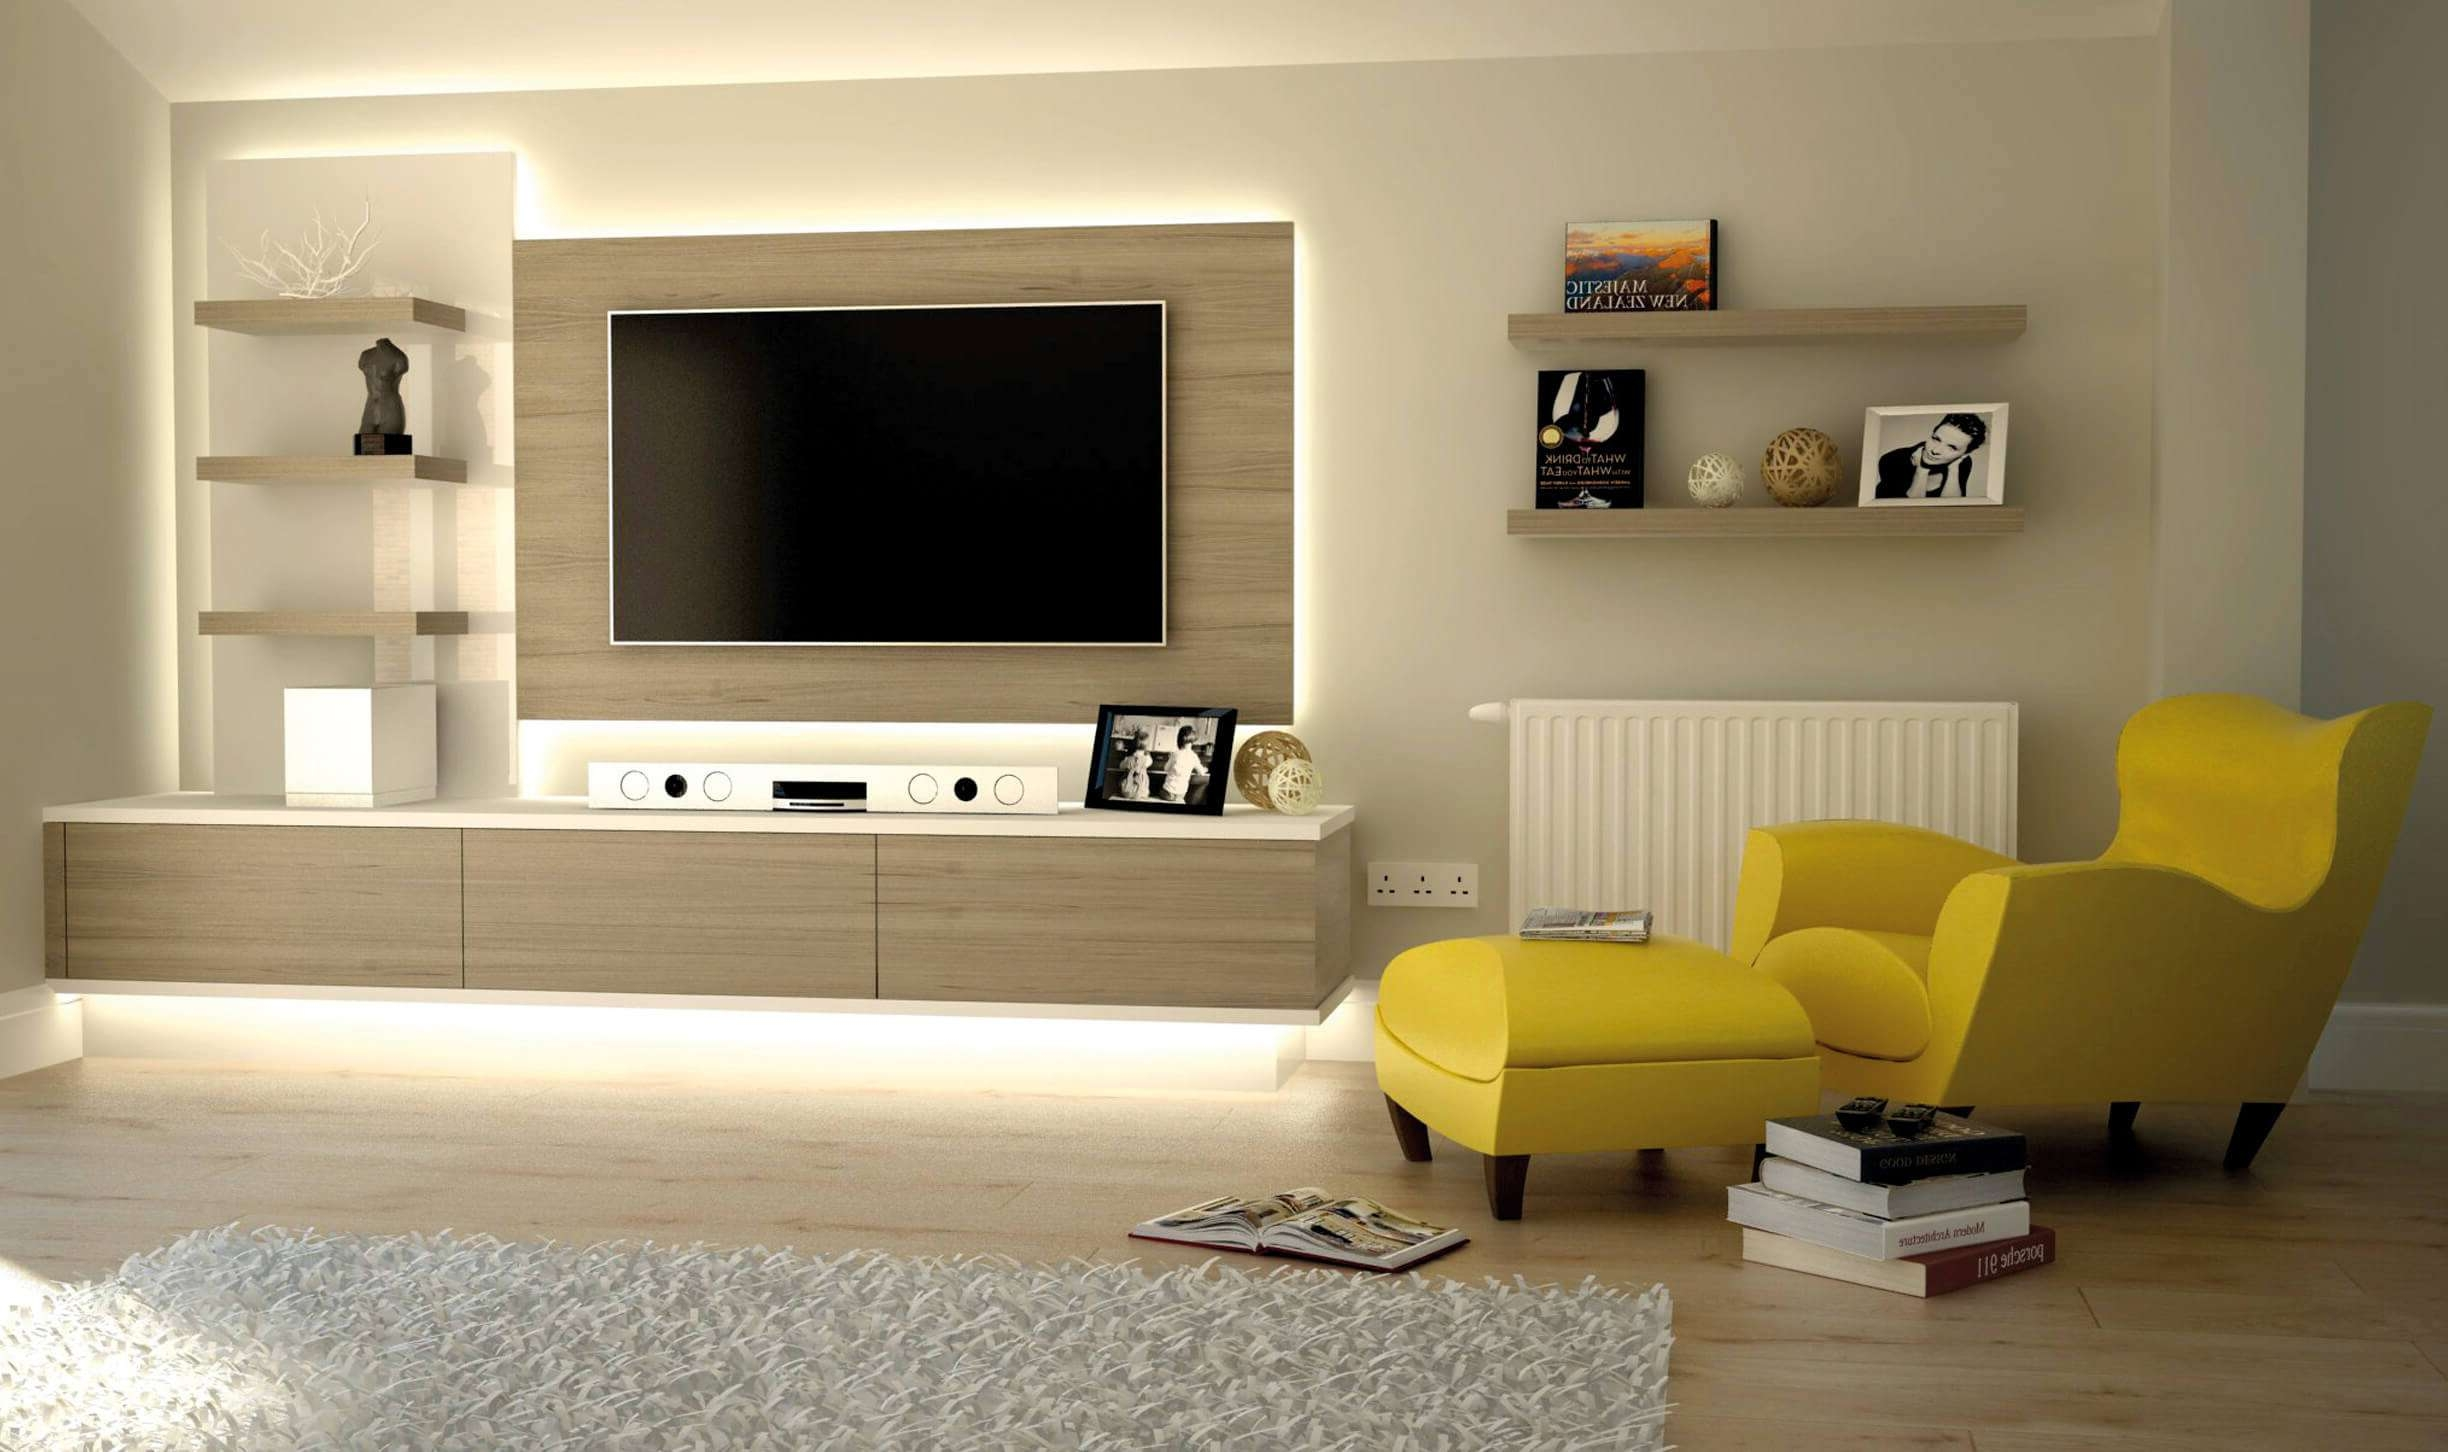 Living Room Tv Cabinet Design With Inspiration | Mariapngt Inside Living Room Tv Cabinets (View 14 of 20)